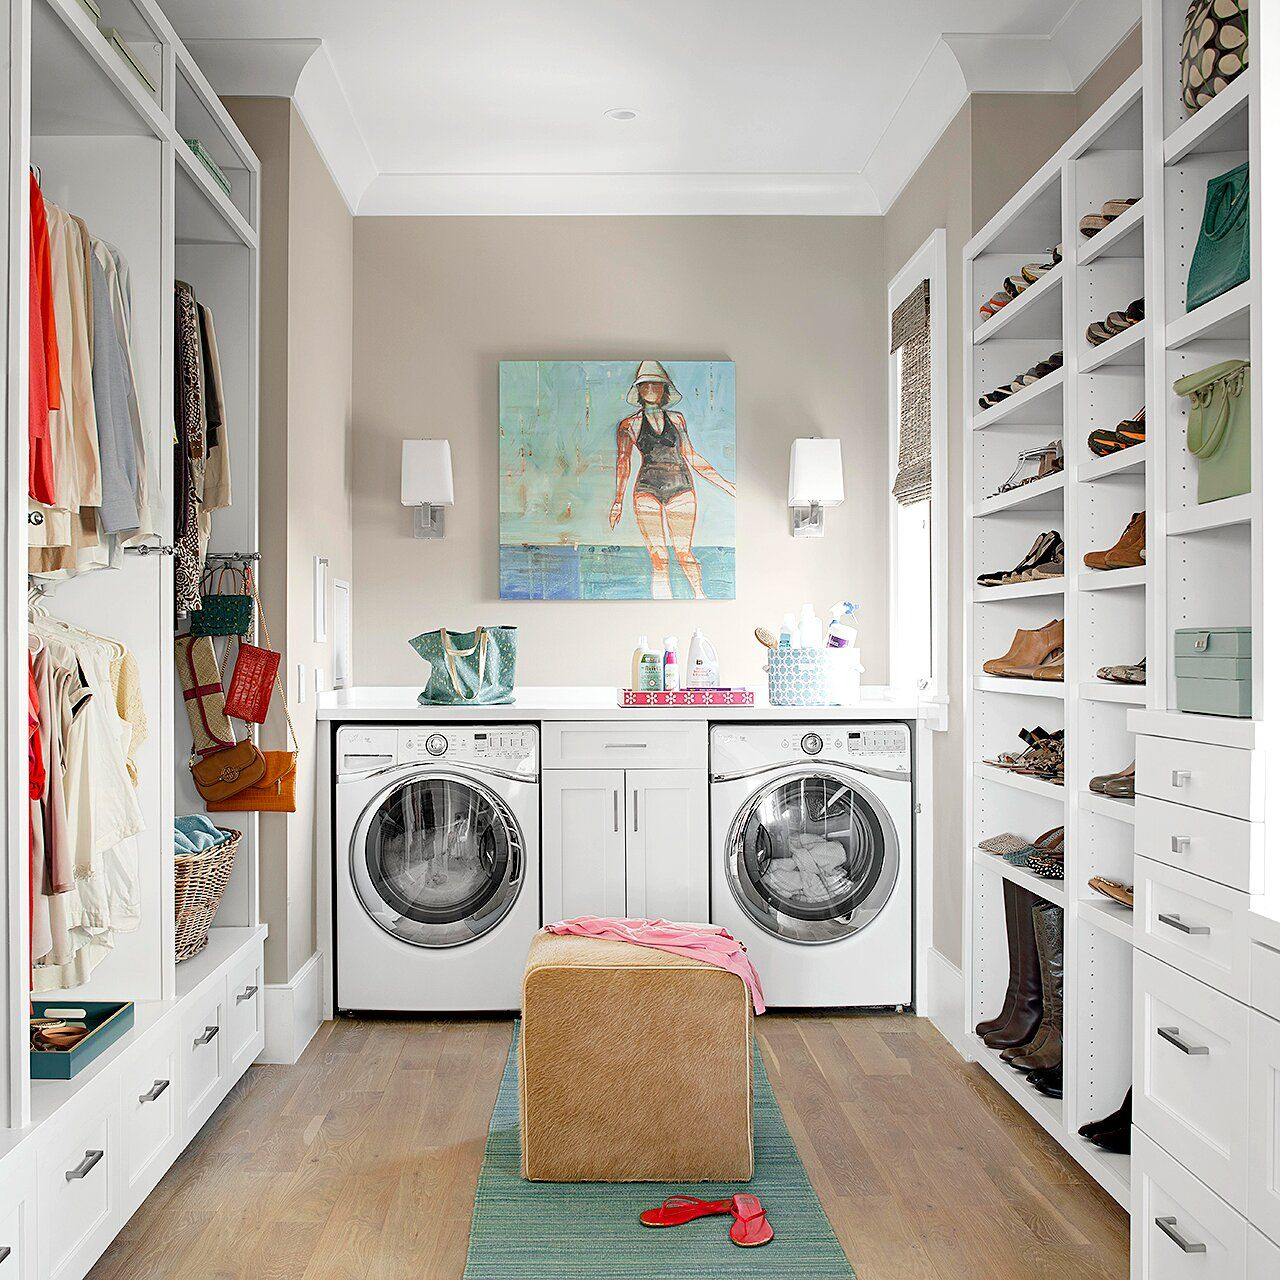 31 Organizing Tips To Steal For Your Closet In 2020 Laundry Room Closet Room Closet Master Bedroom Closet